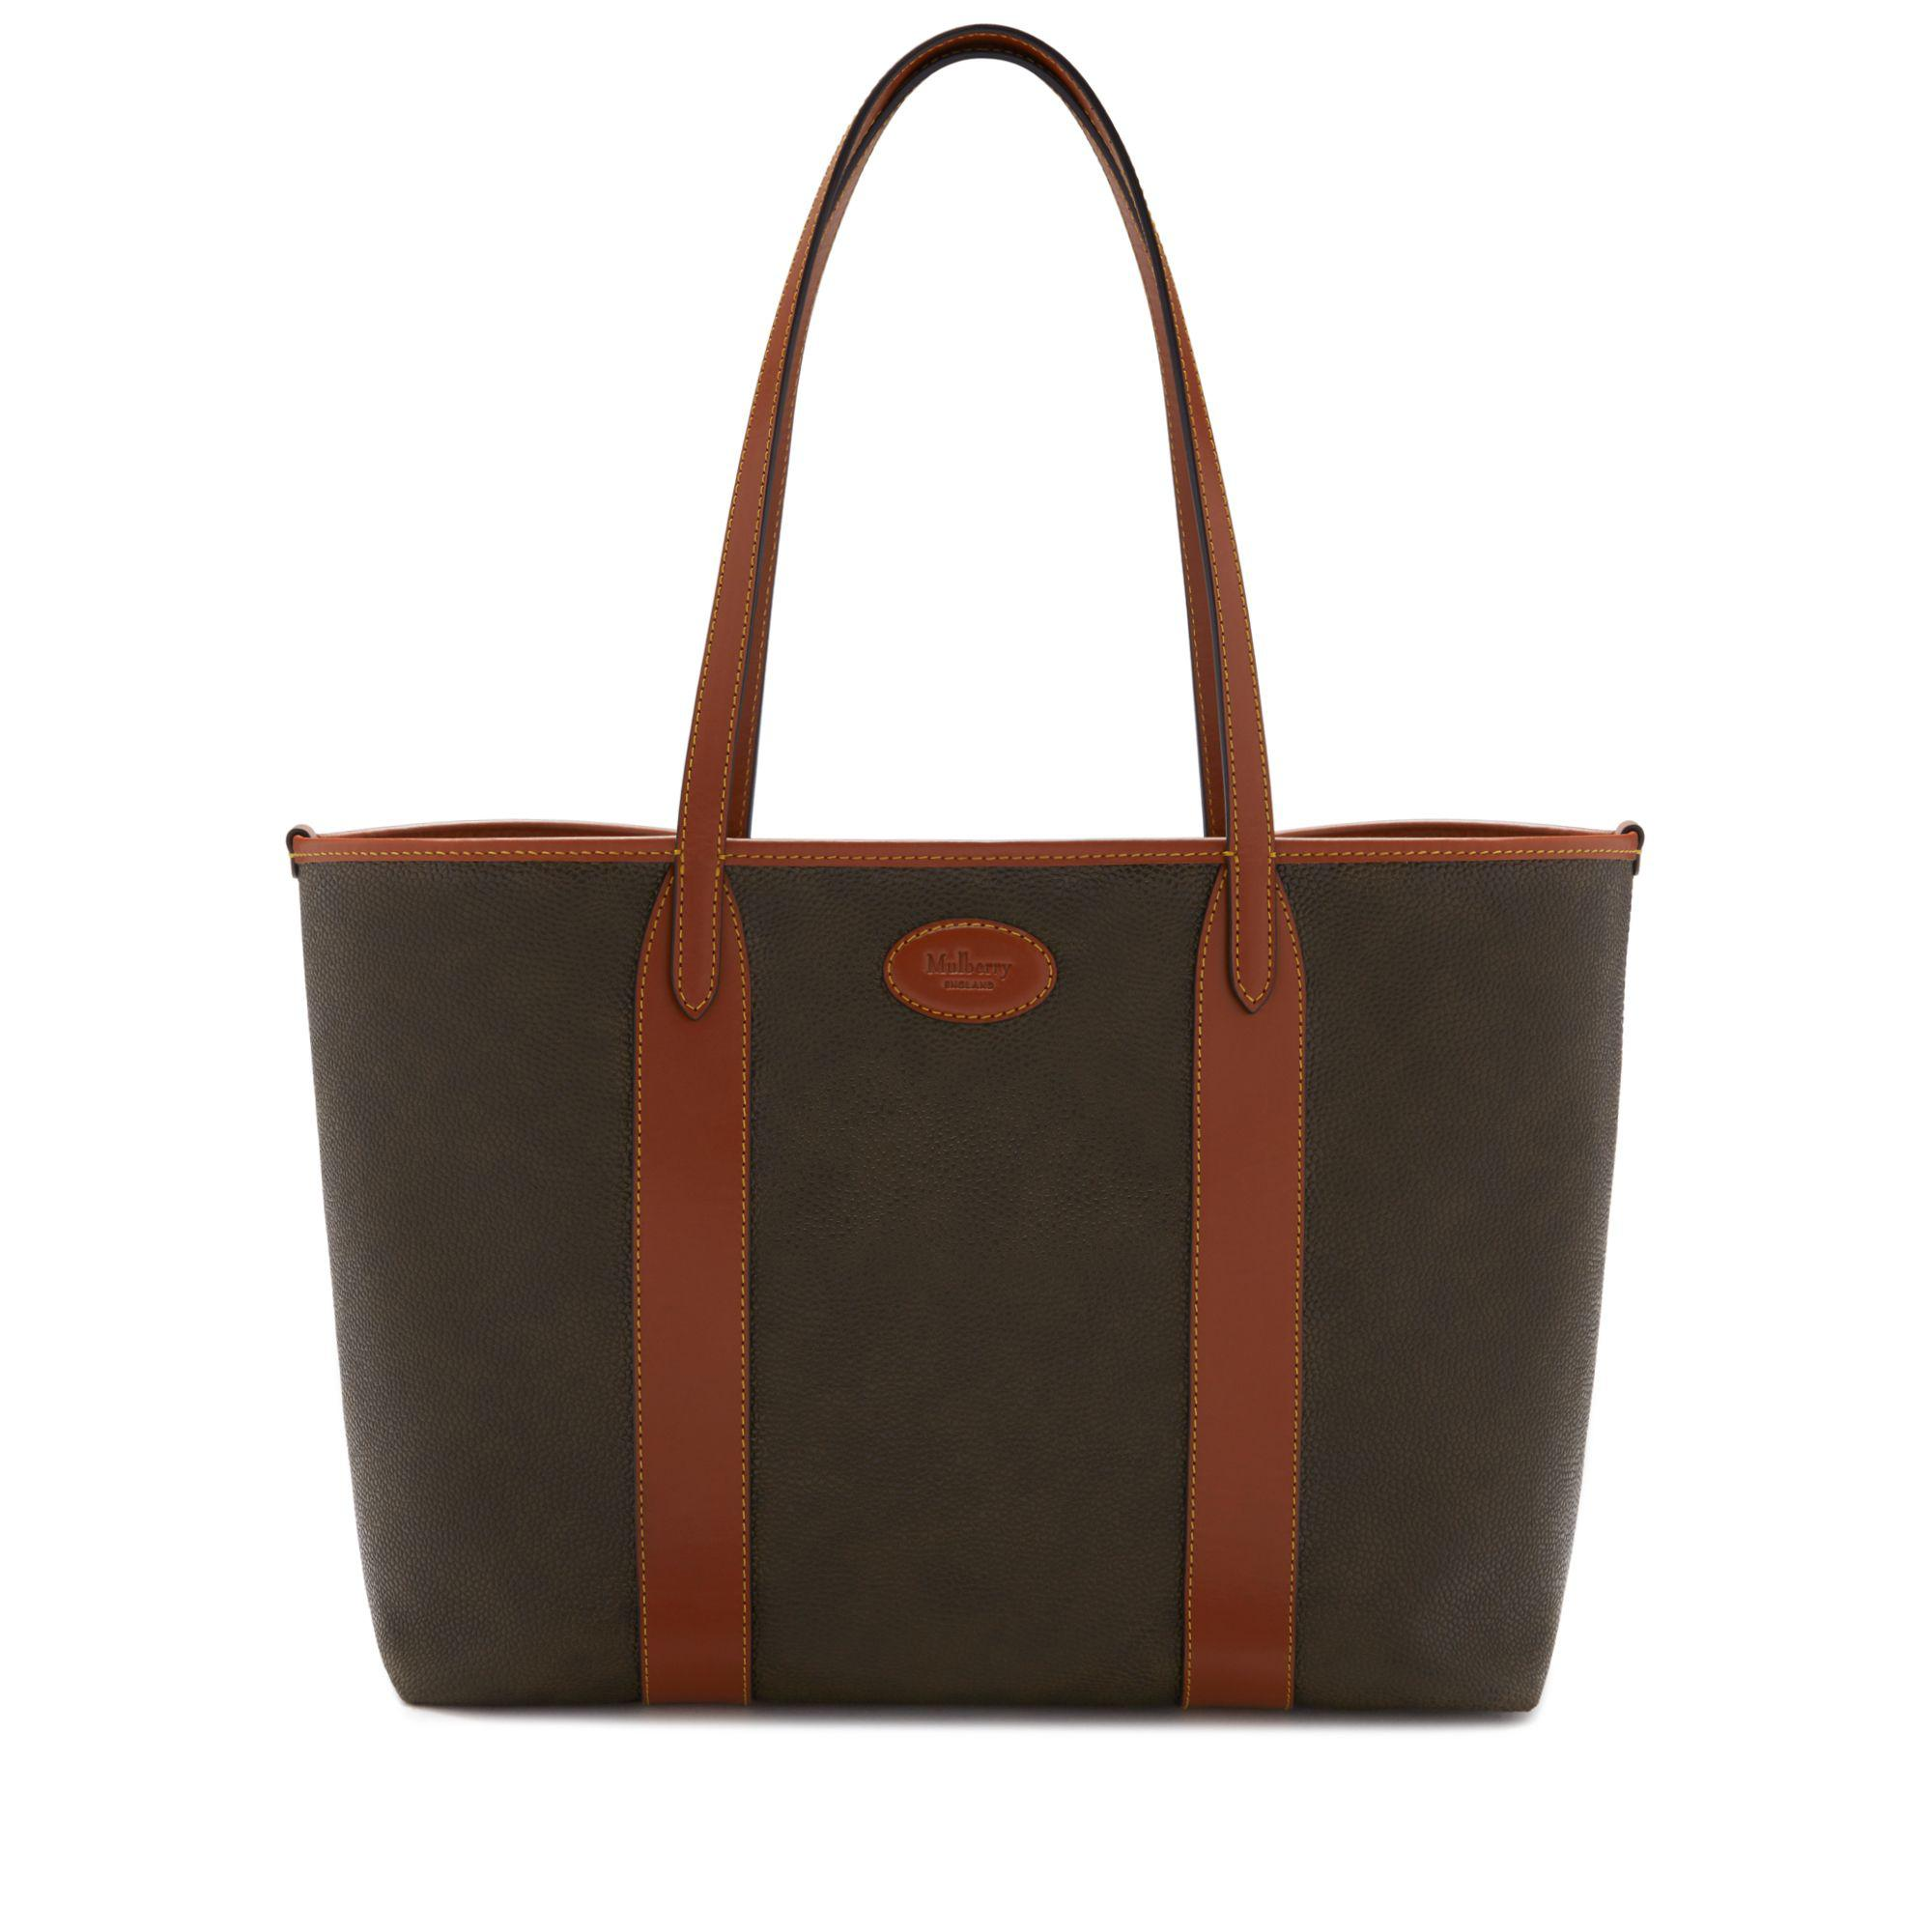 8d2bb90356 Lyst - Mulberry Bayswater Tote In Mole And Cognac Scotchgrain in Brown